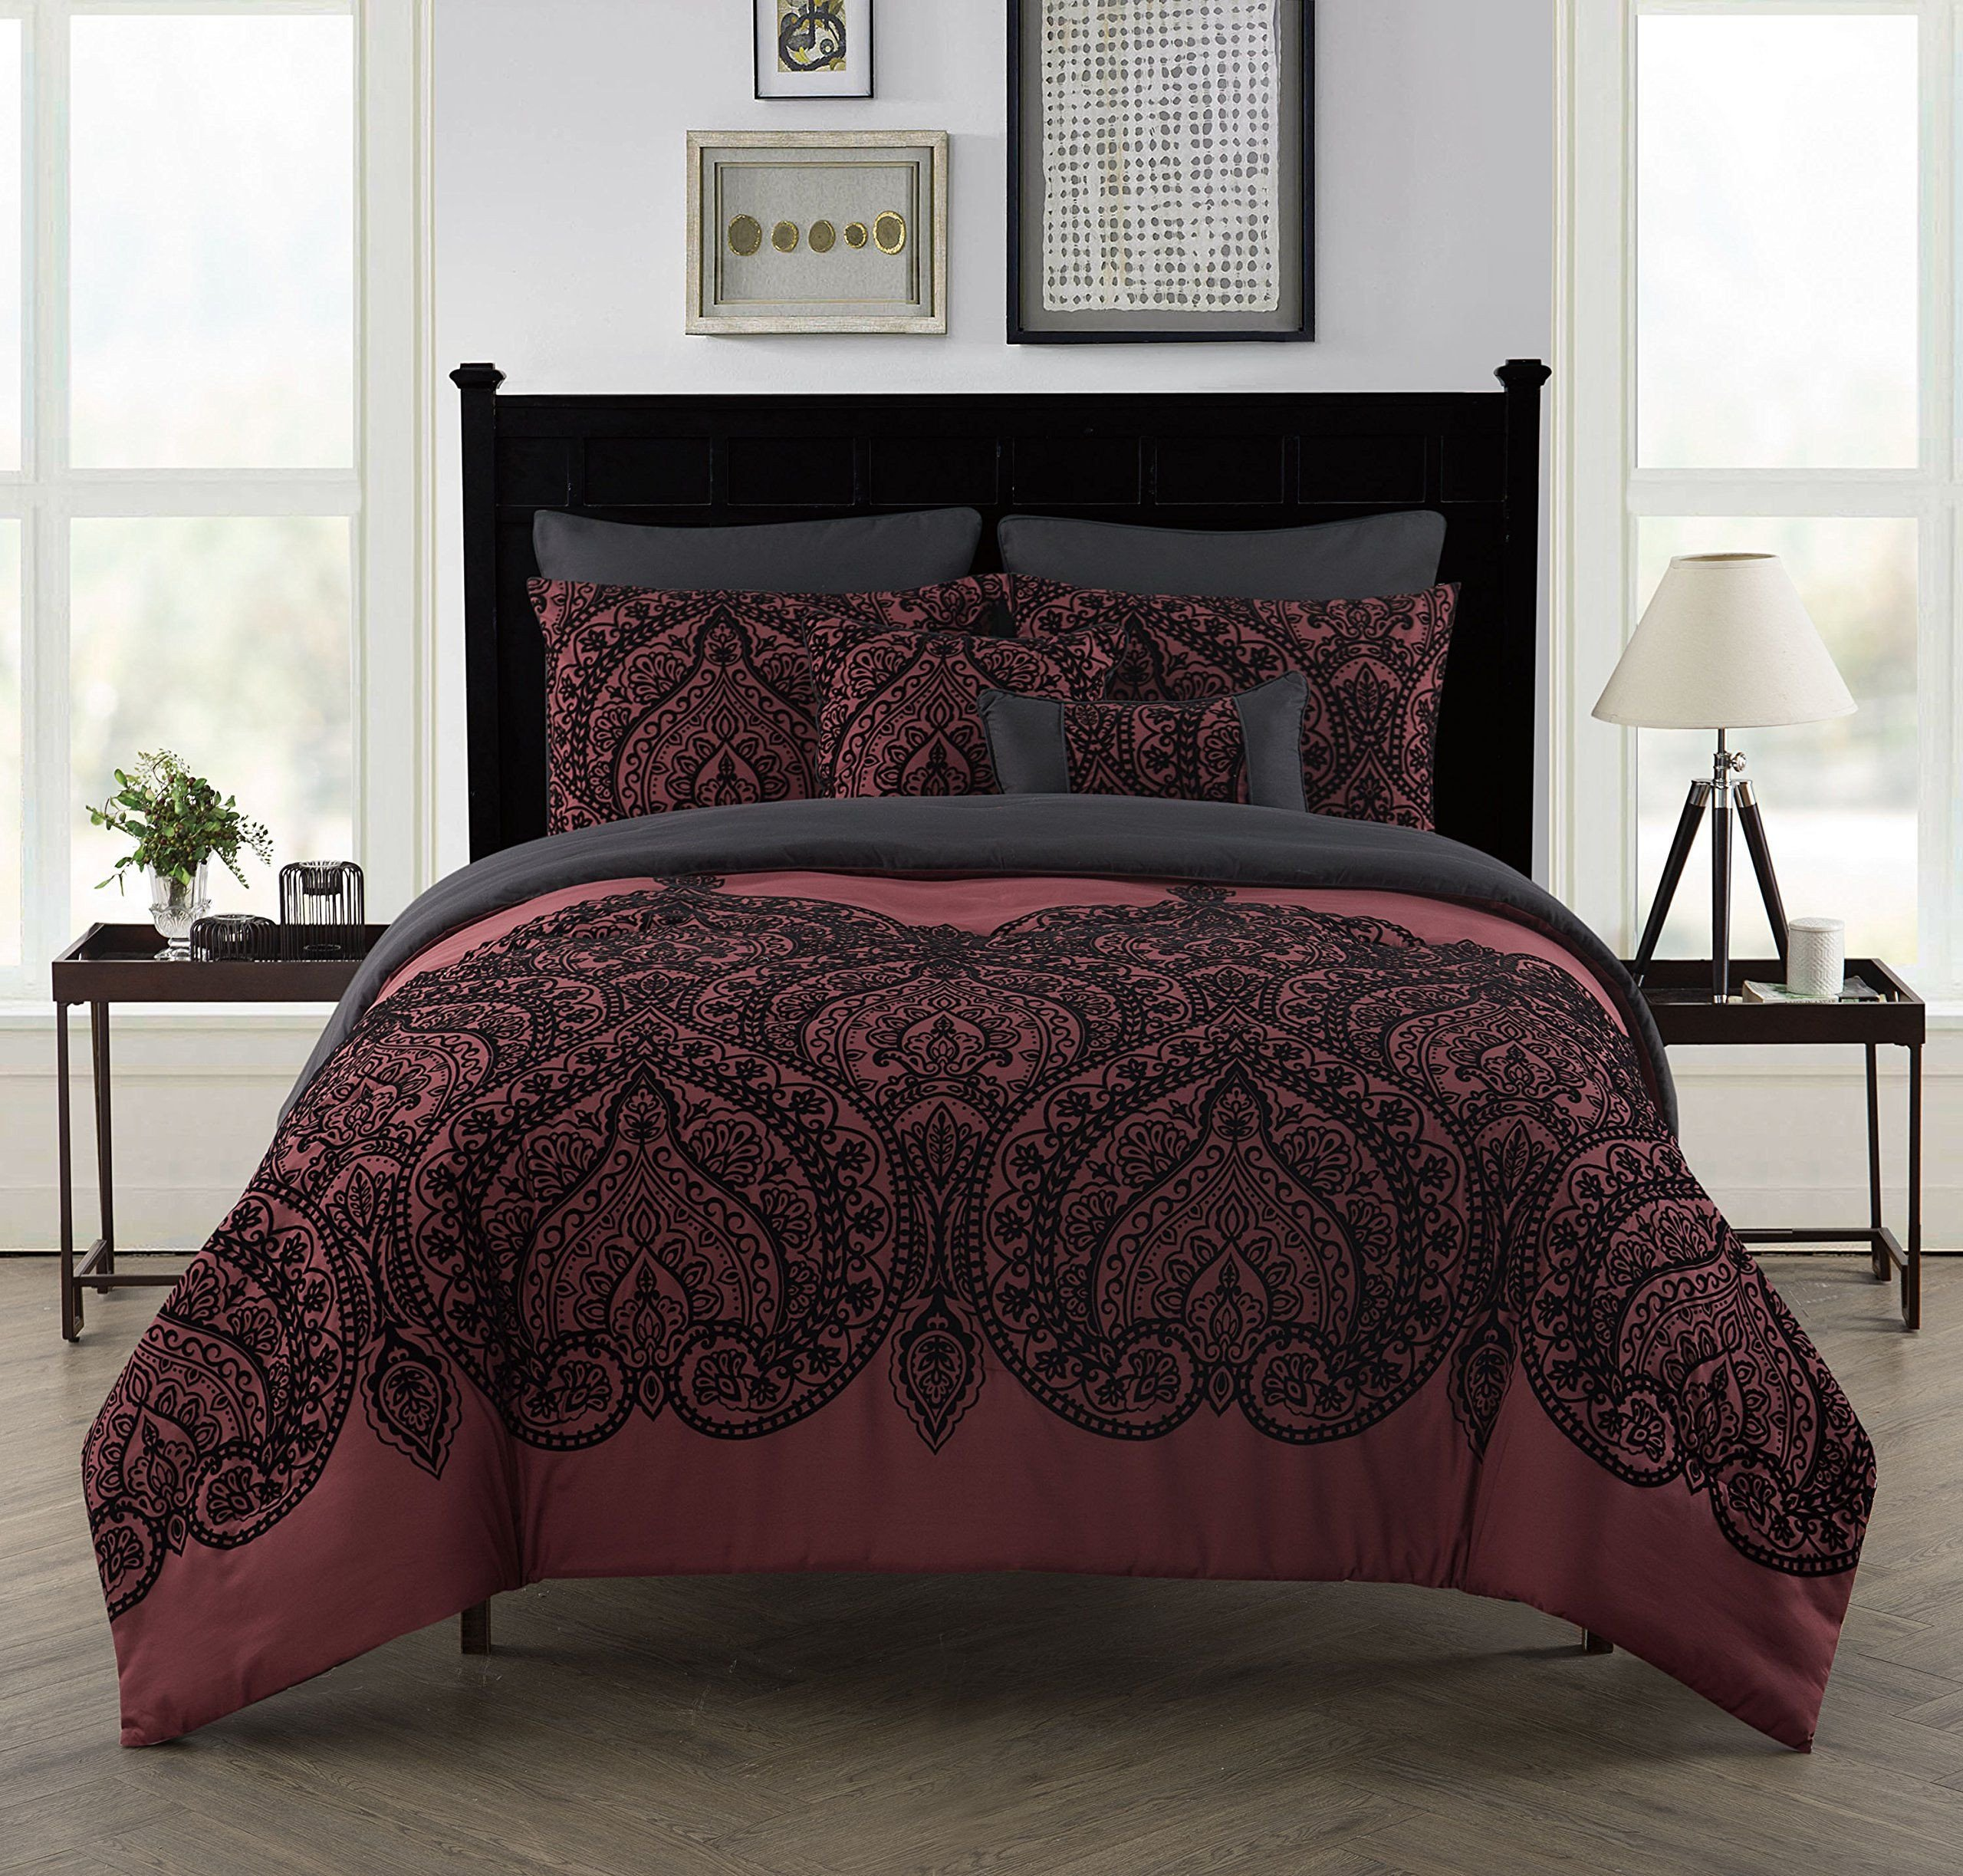 7 Piece Bedroom Set Queen Best Of Flocked Paisley 7 Piece forter Set by Vcny Home Full